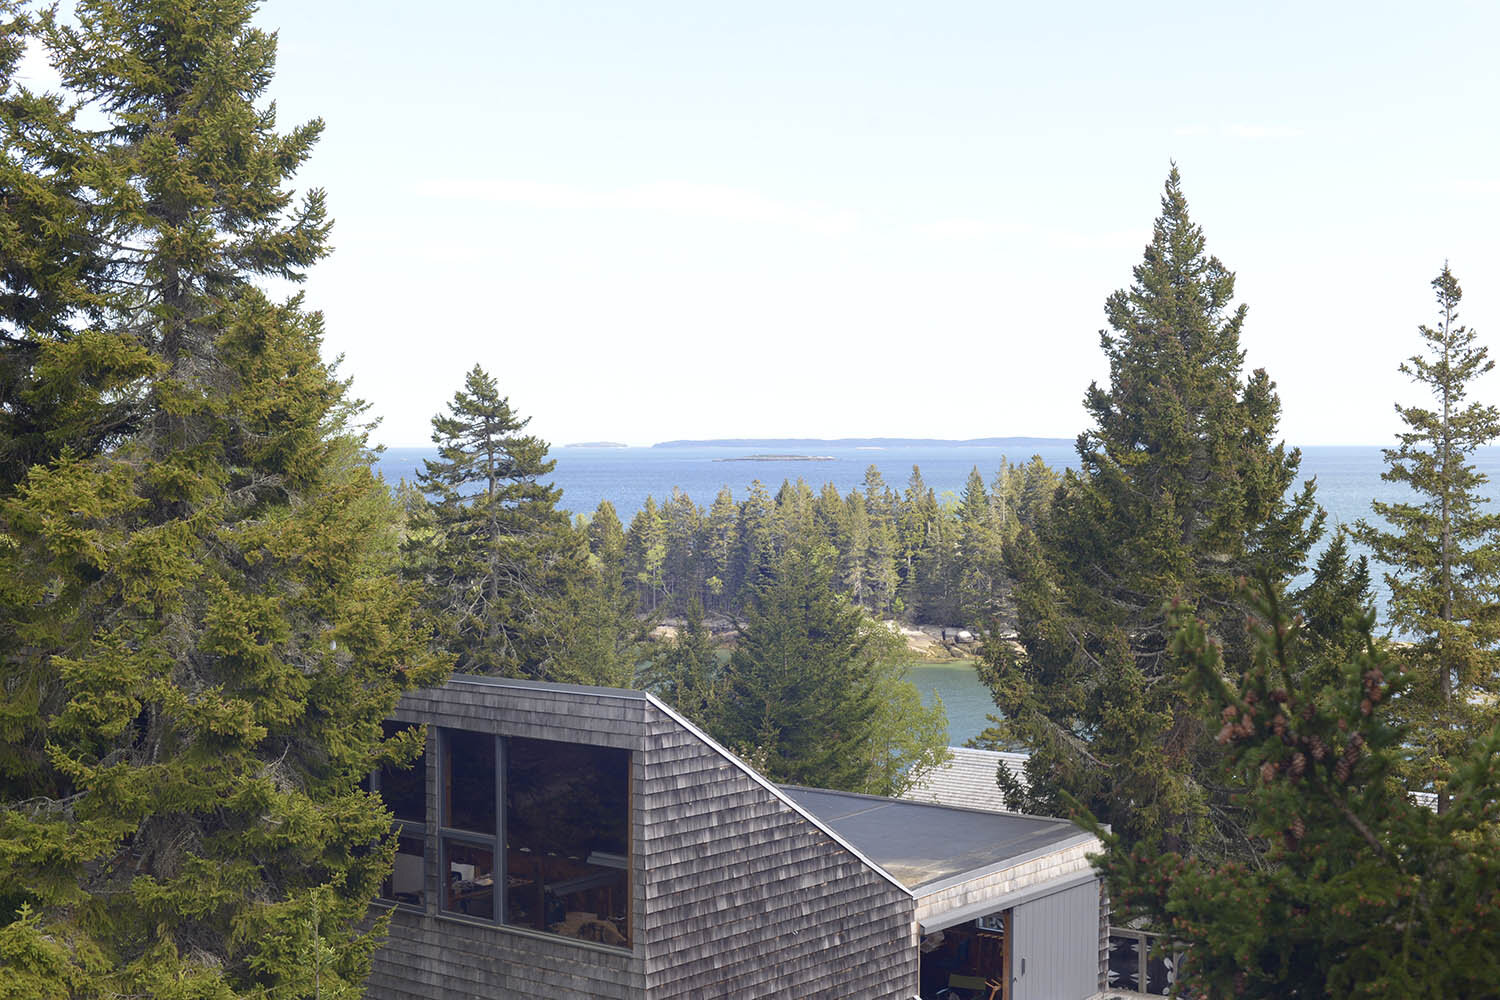 A view of the Haystack campus with the ocean in the background